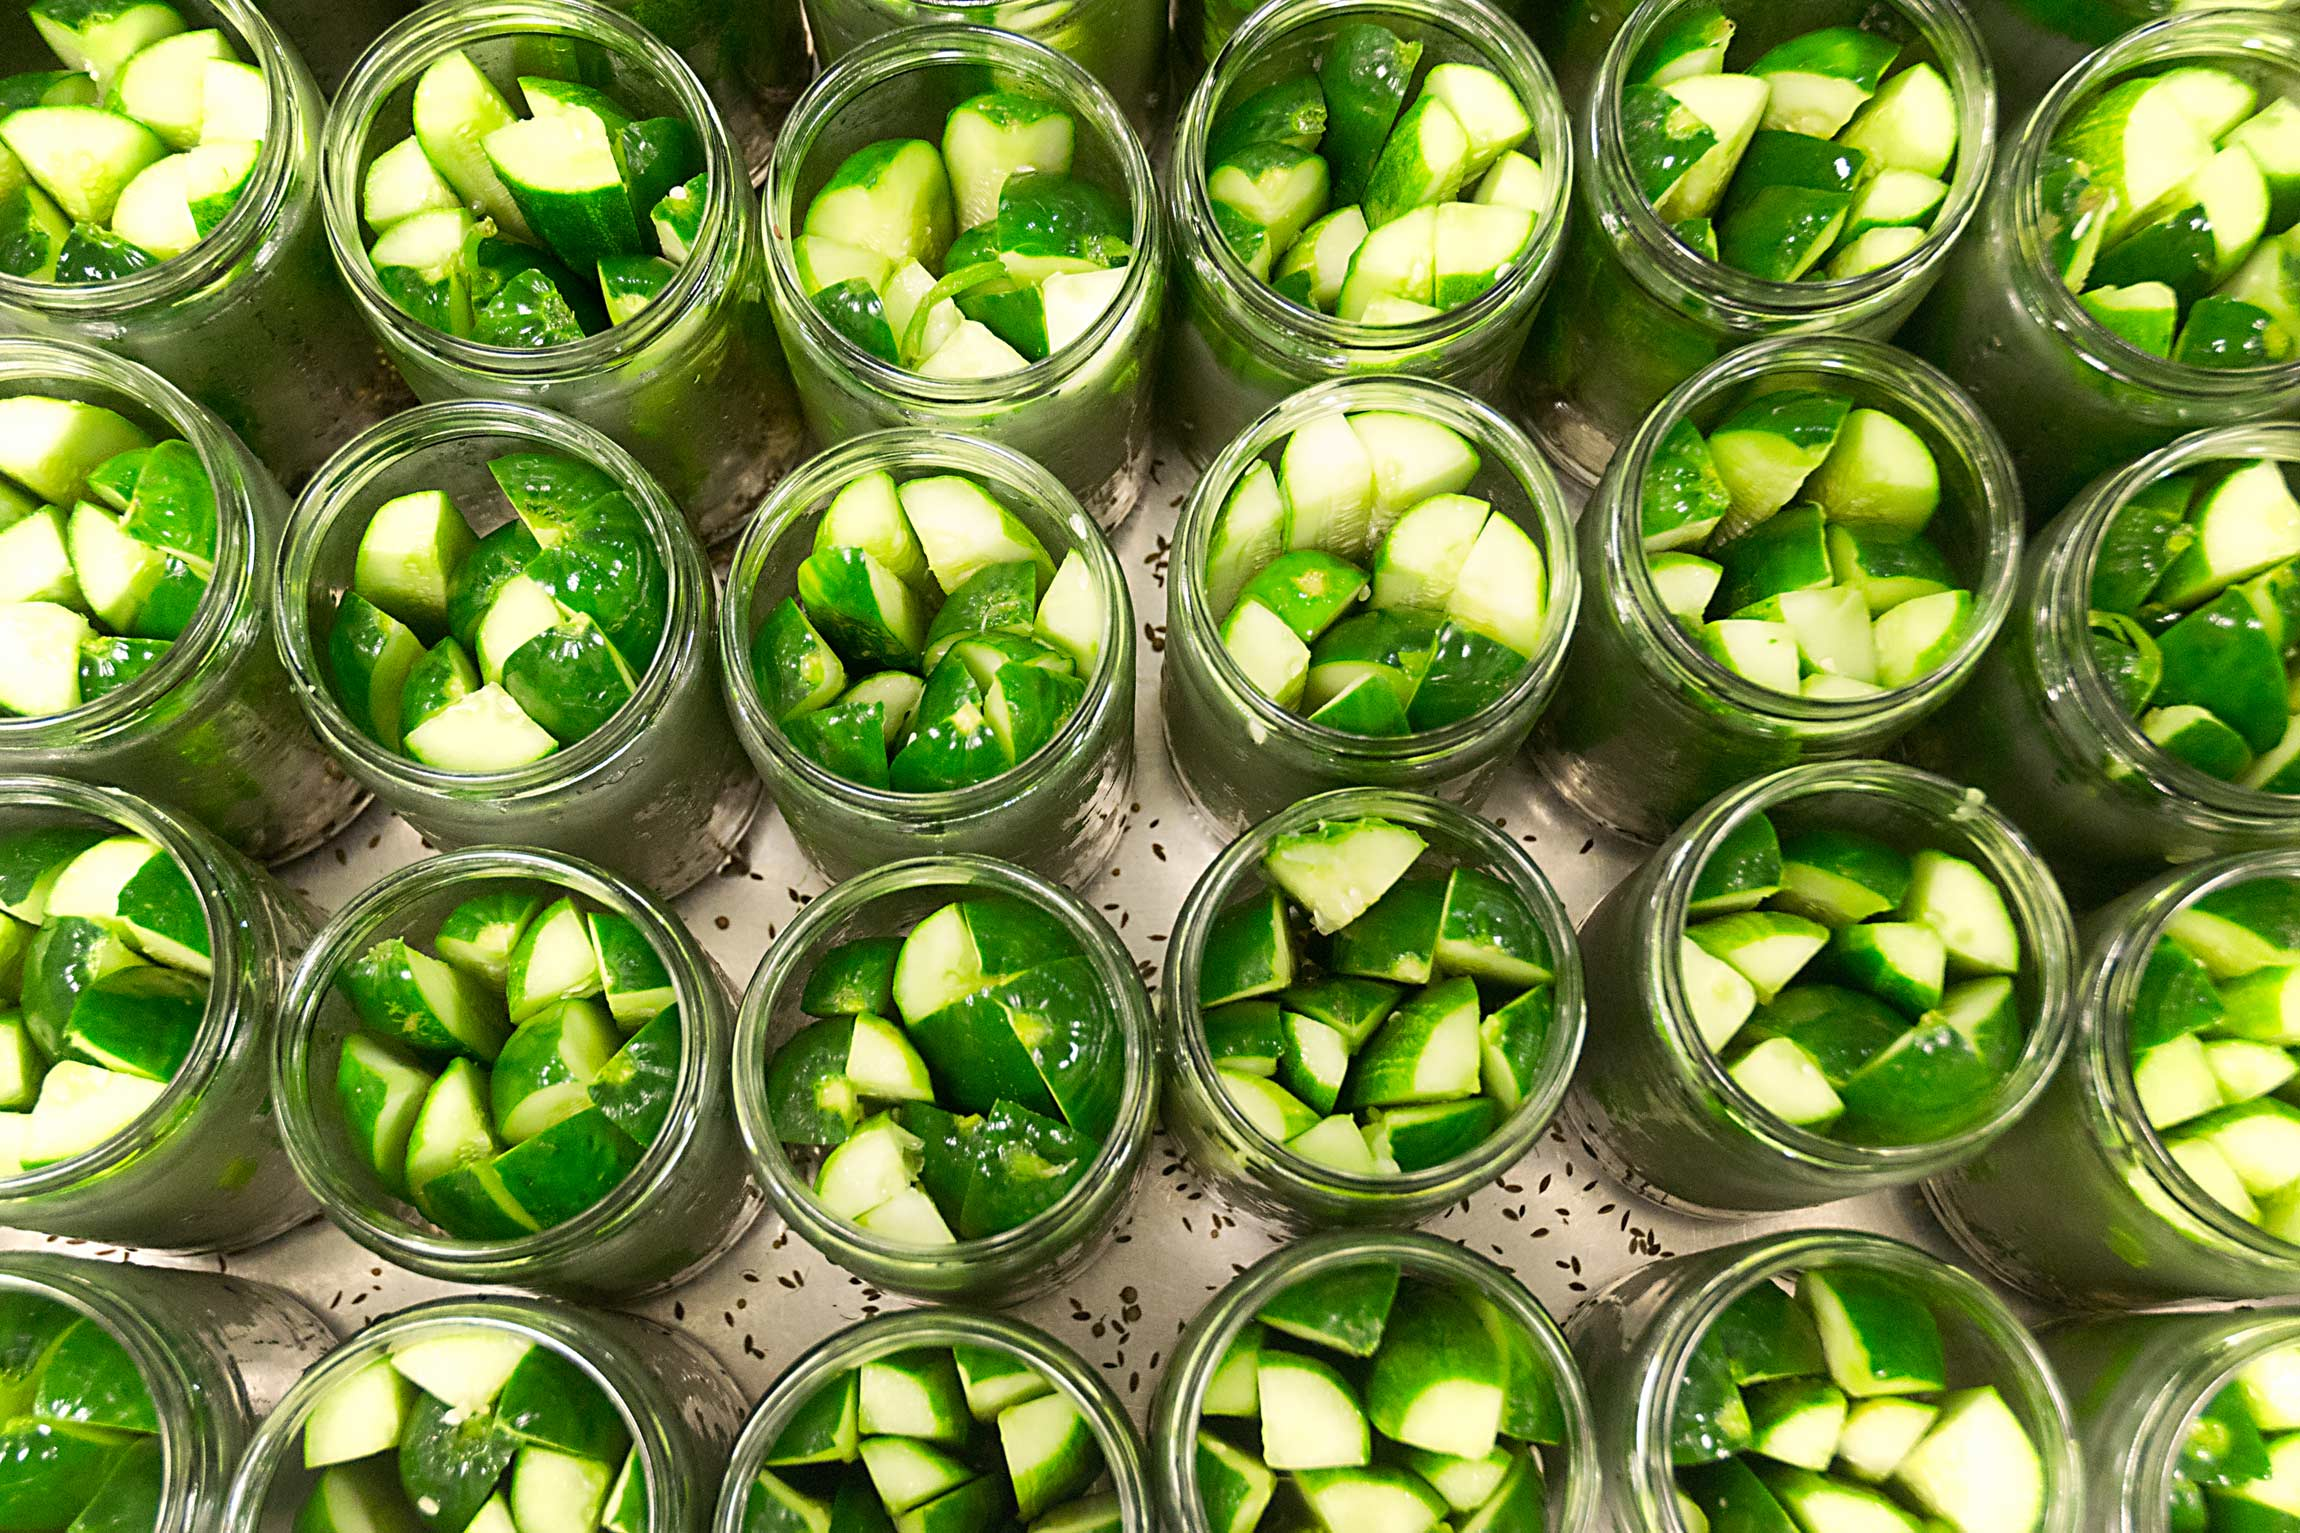 Fox Point Pickles